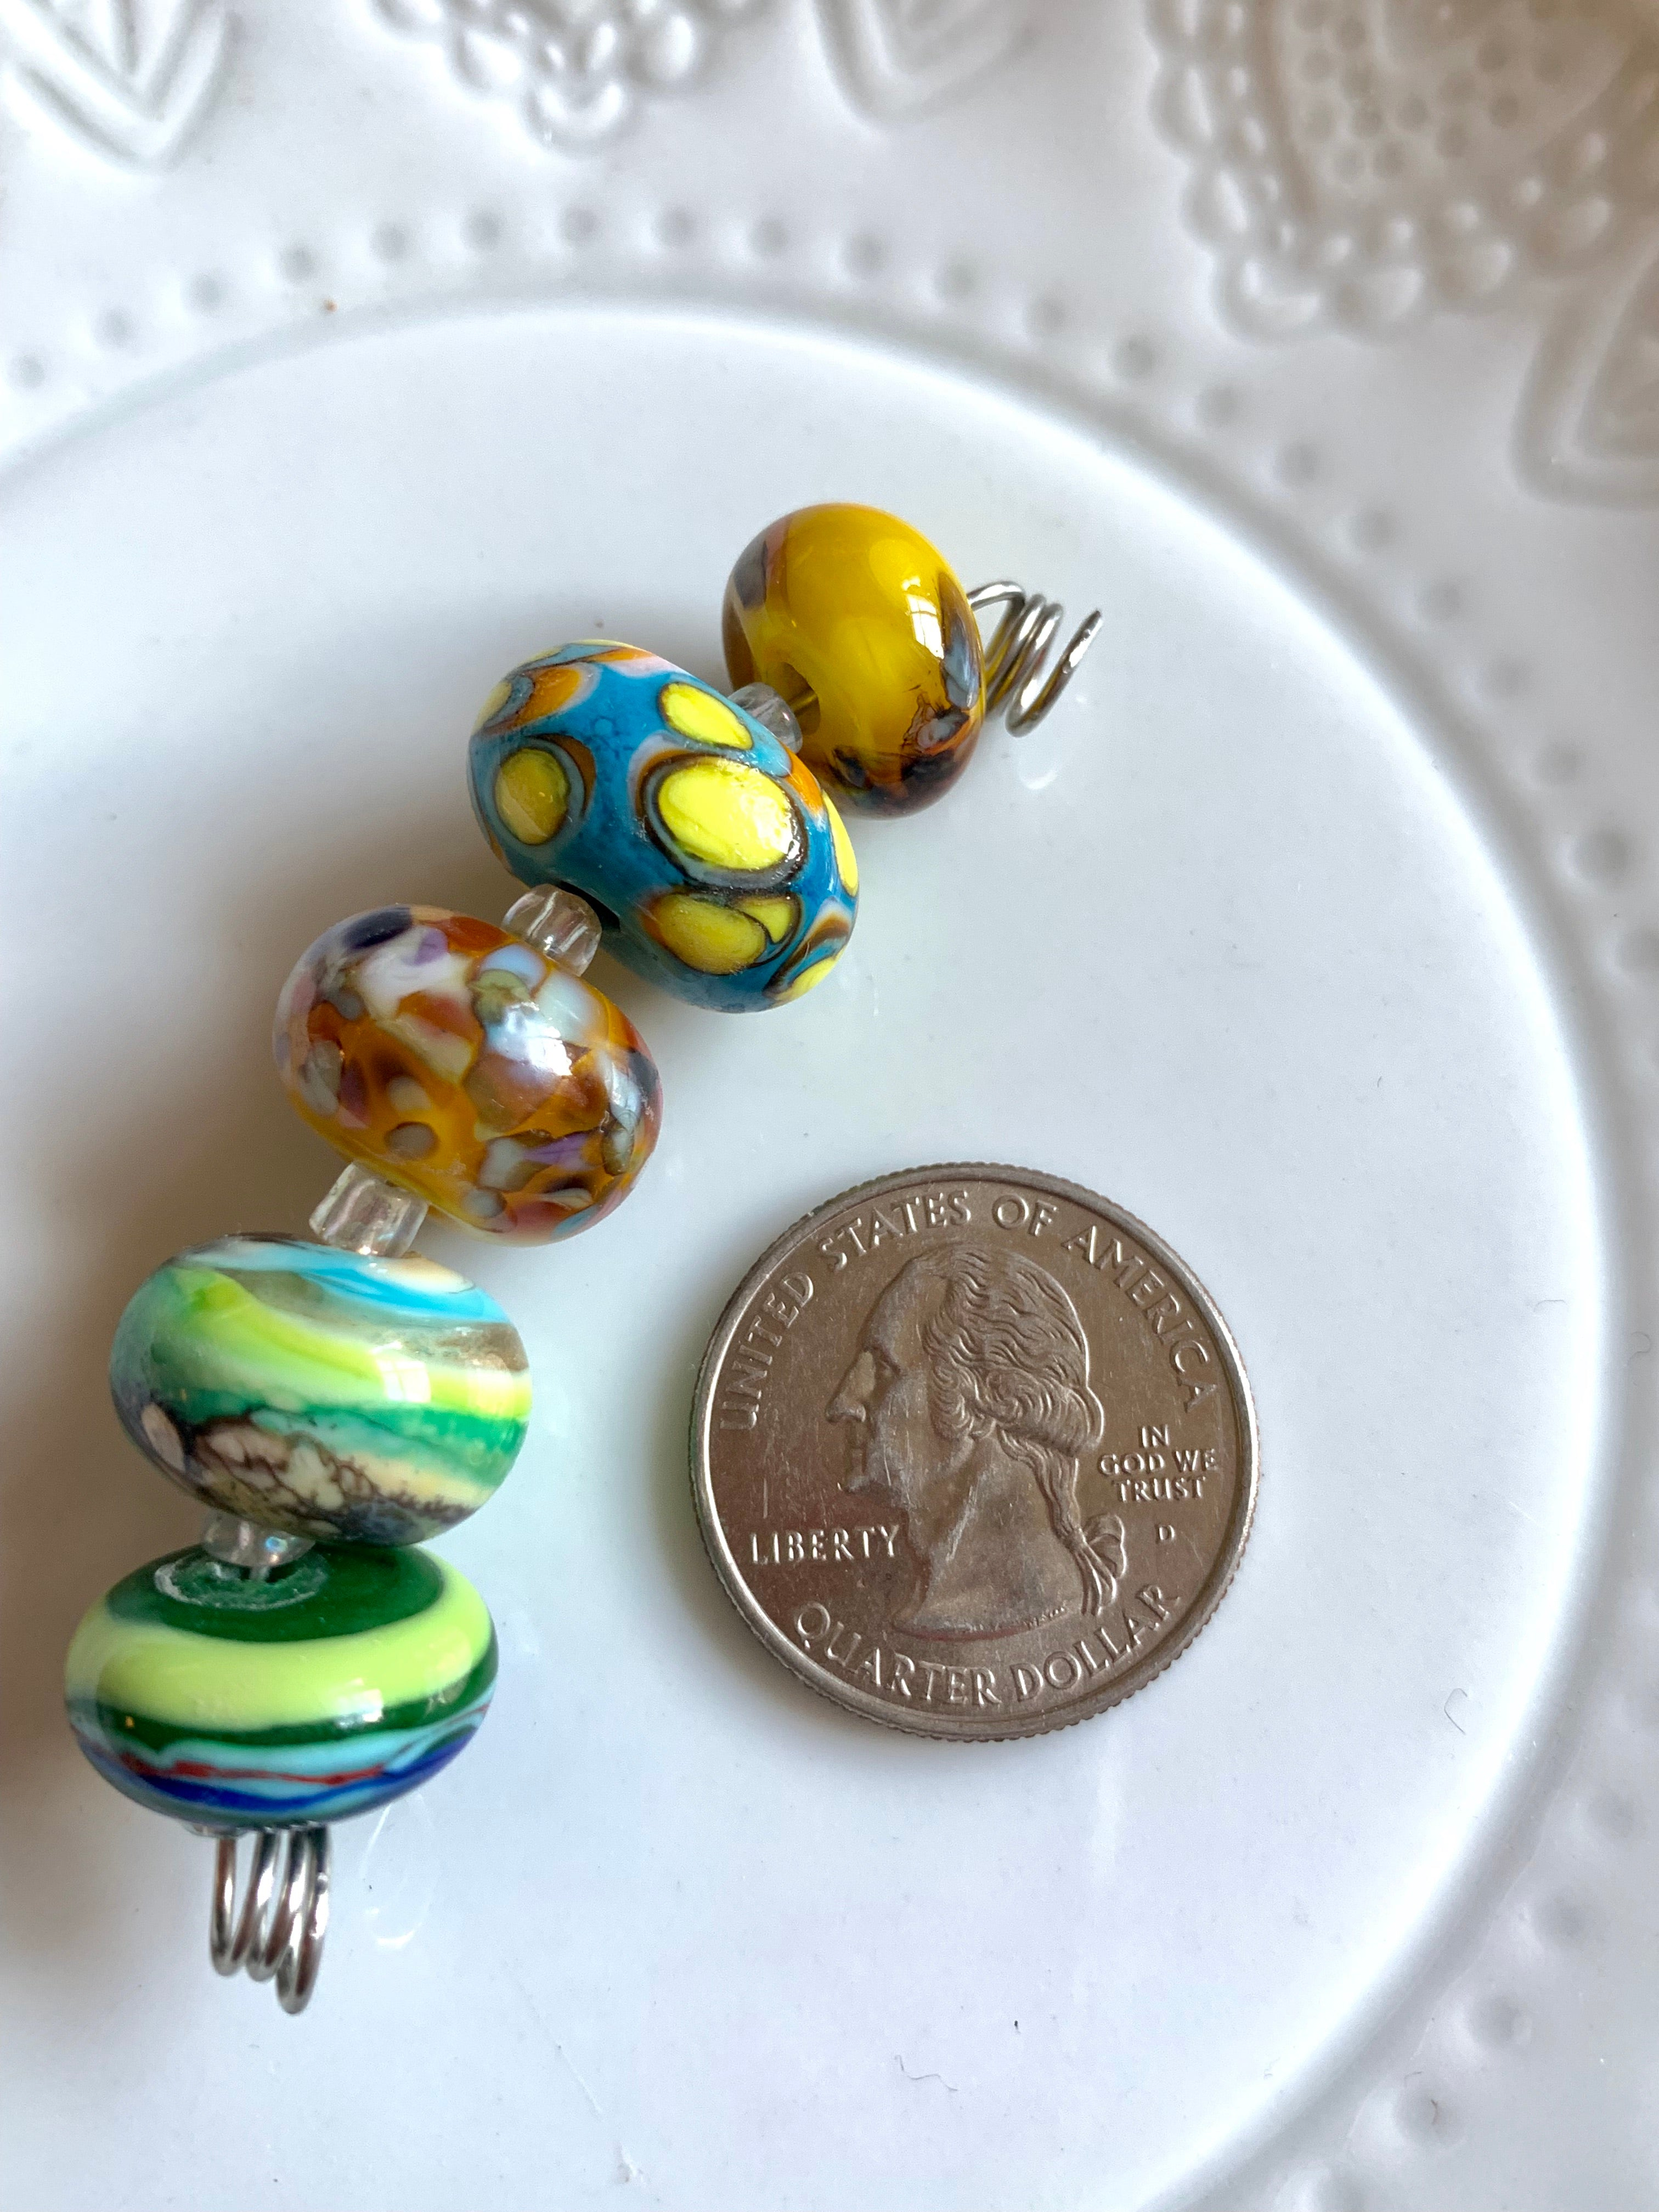 Set of 5 summery lampwork glass beads in yellows, teal, blues, and greens